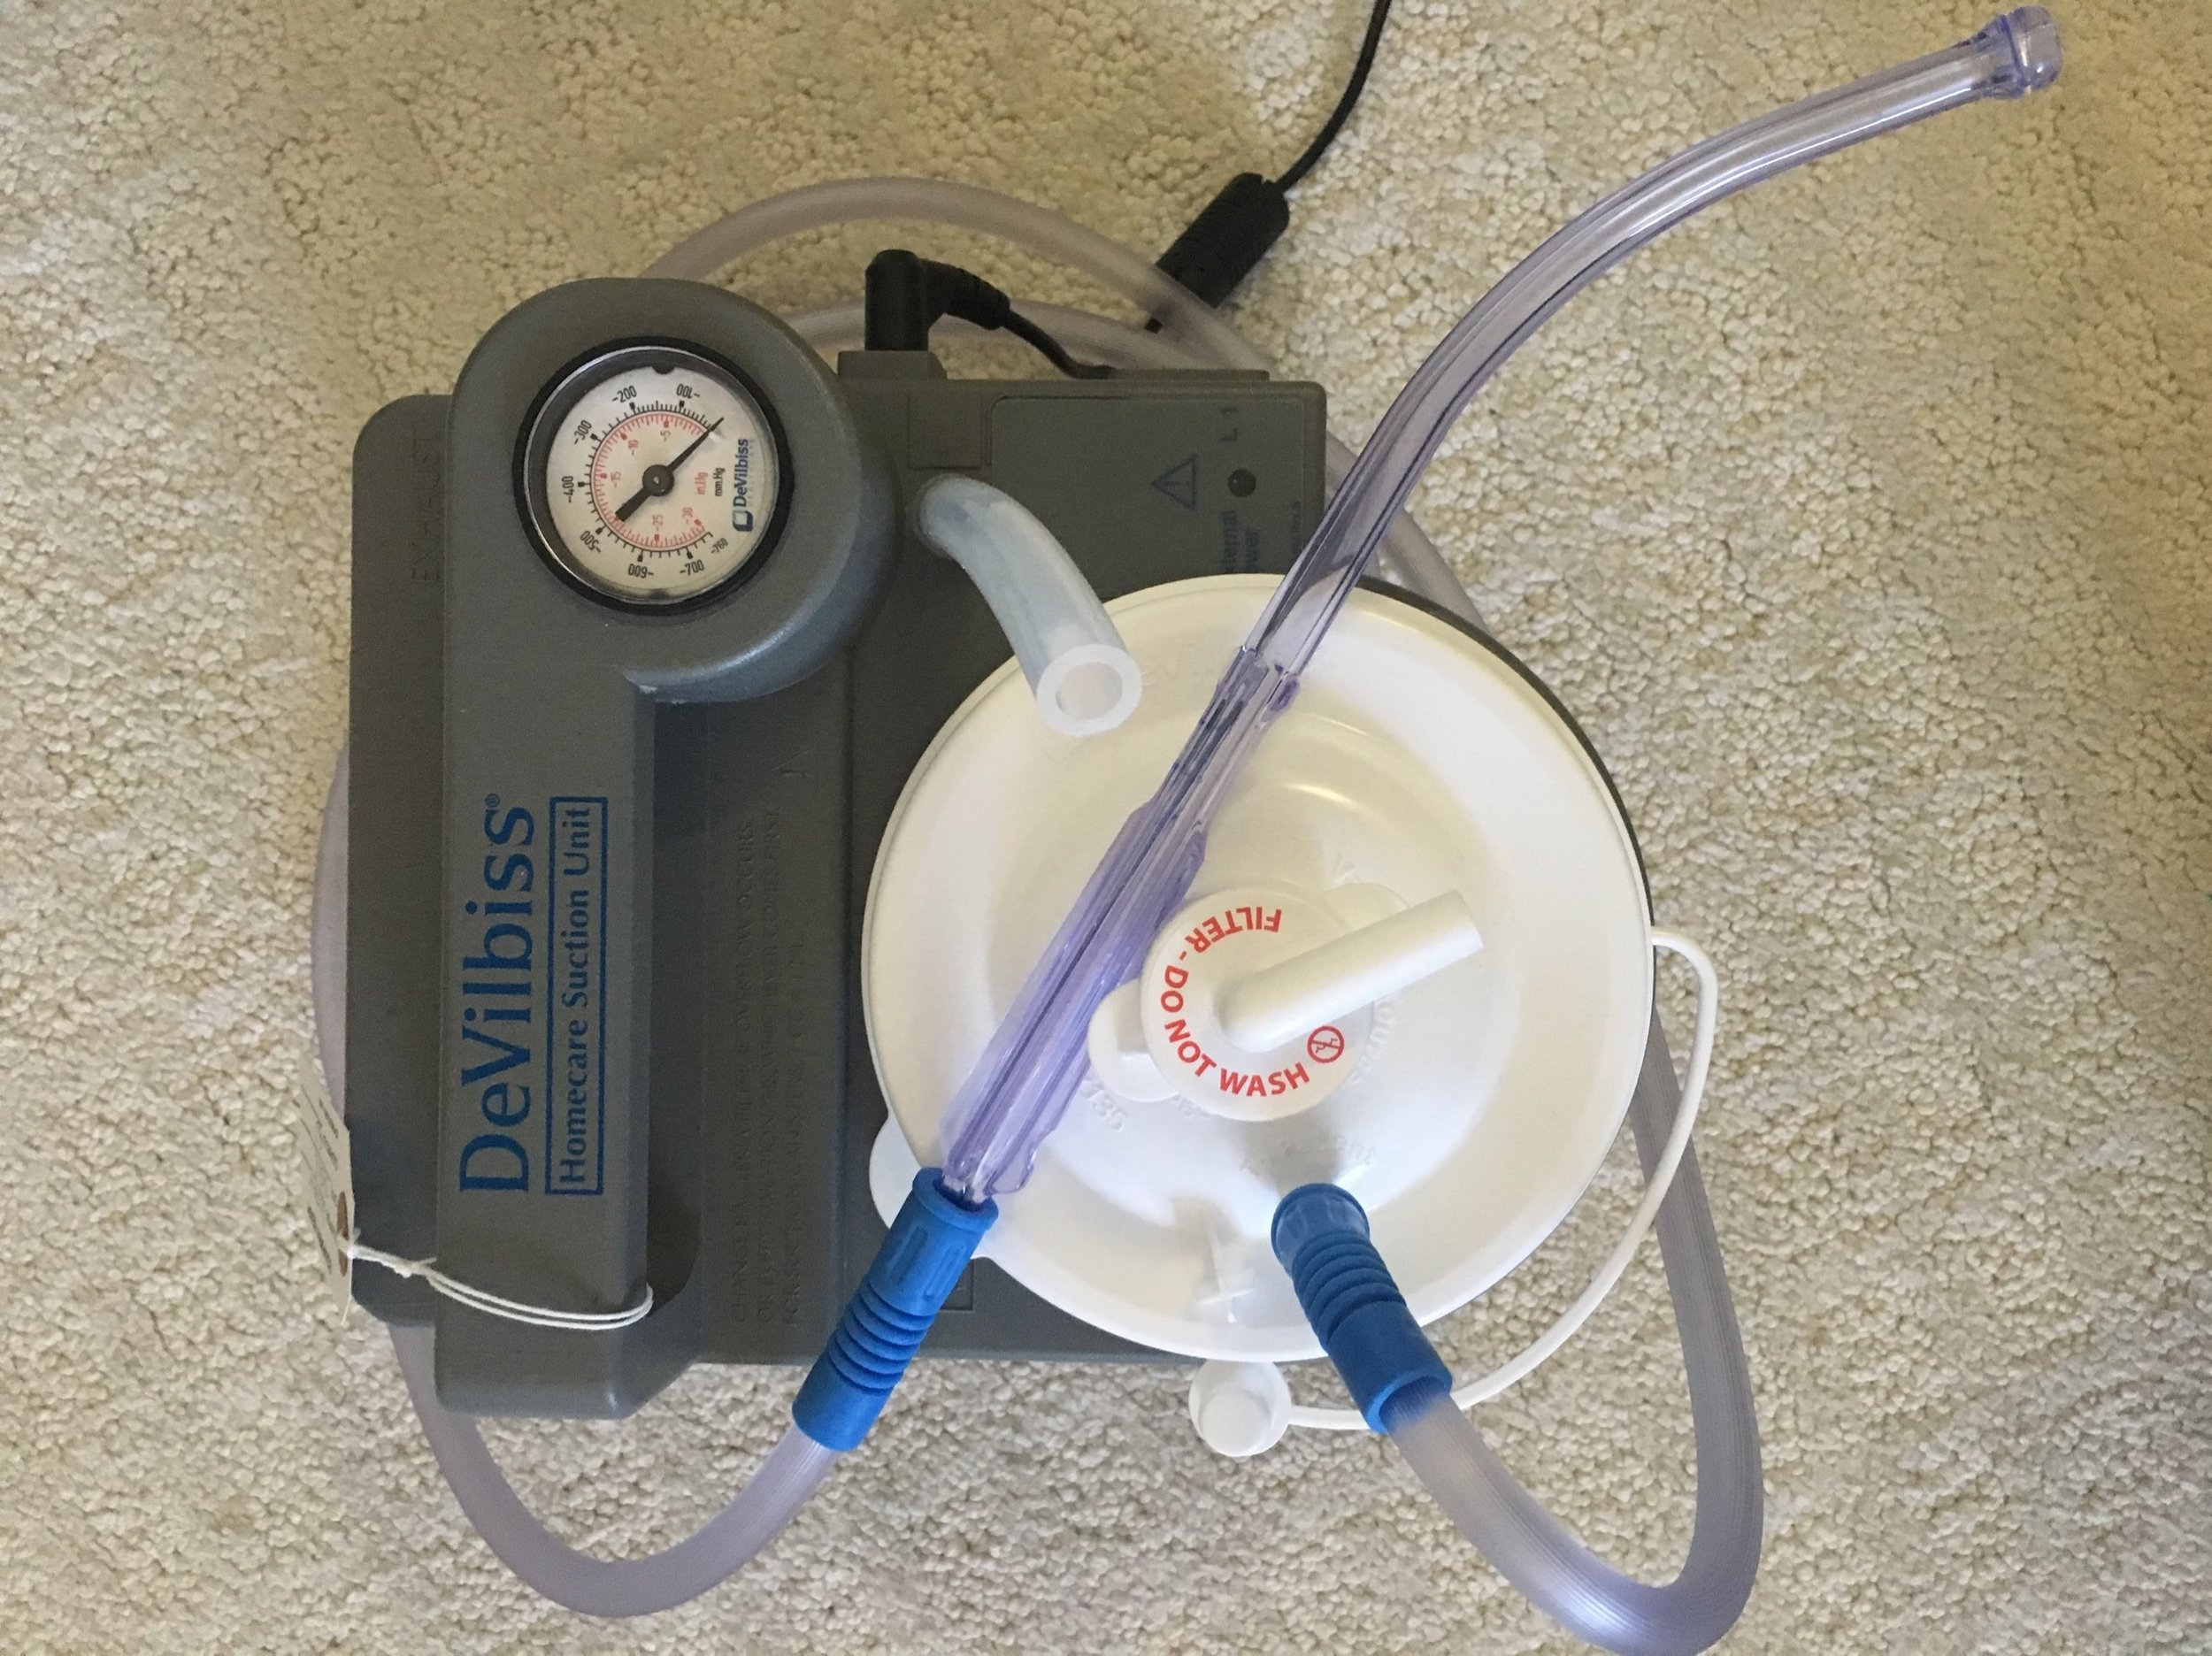 suction tip device.jpg